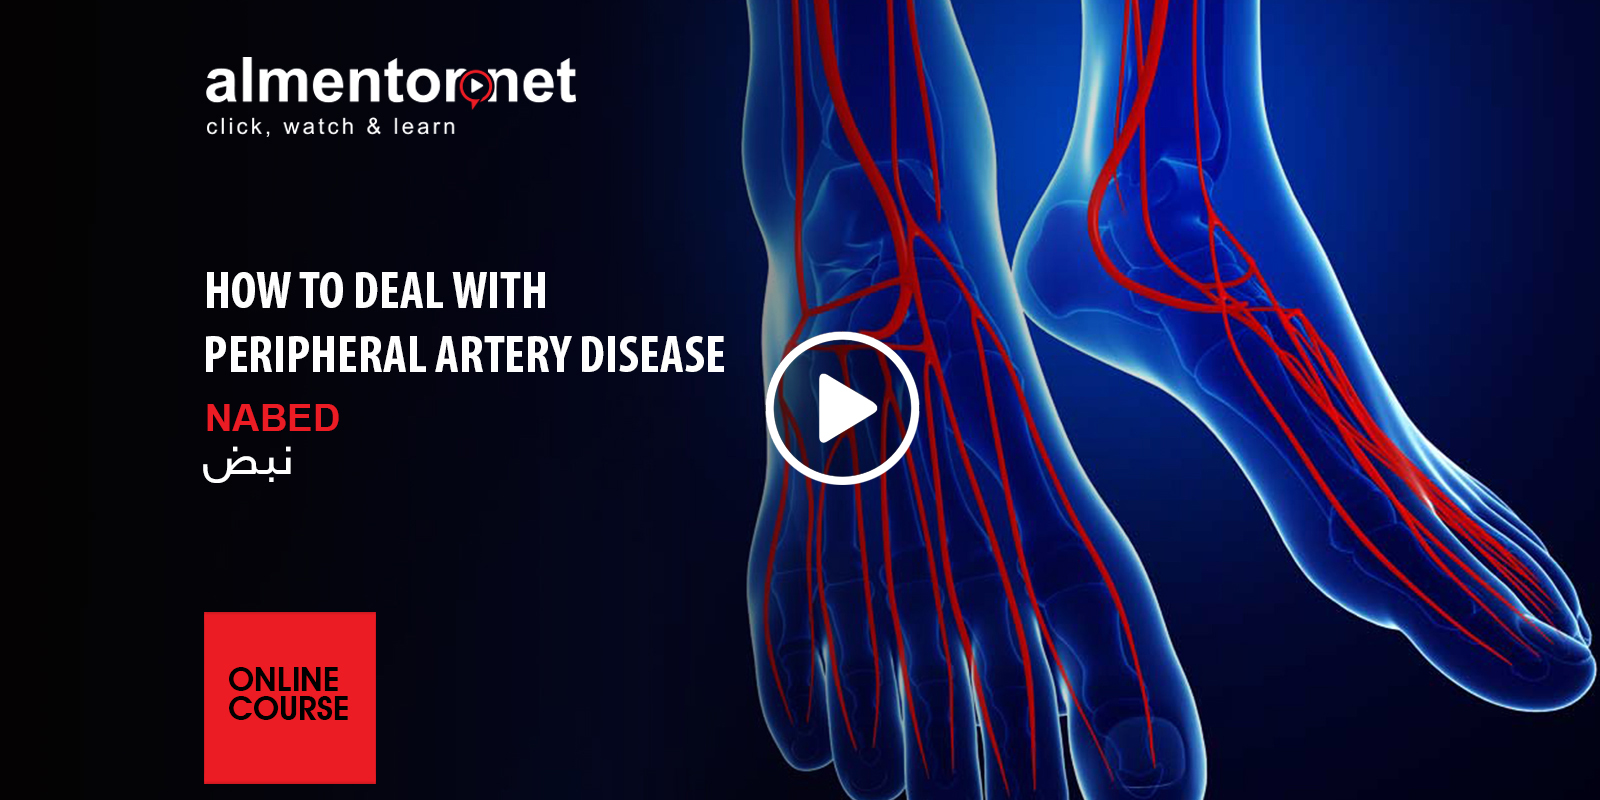 How To Deal With Peripheral Artery Disease Course